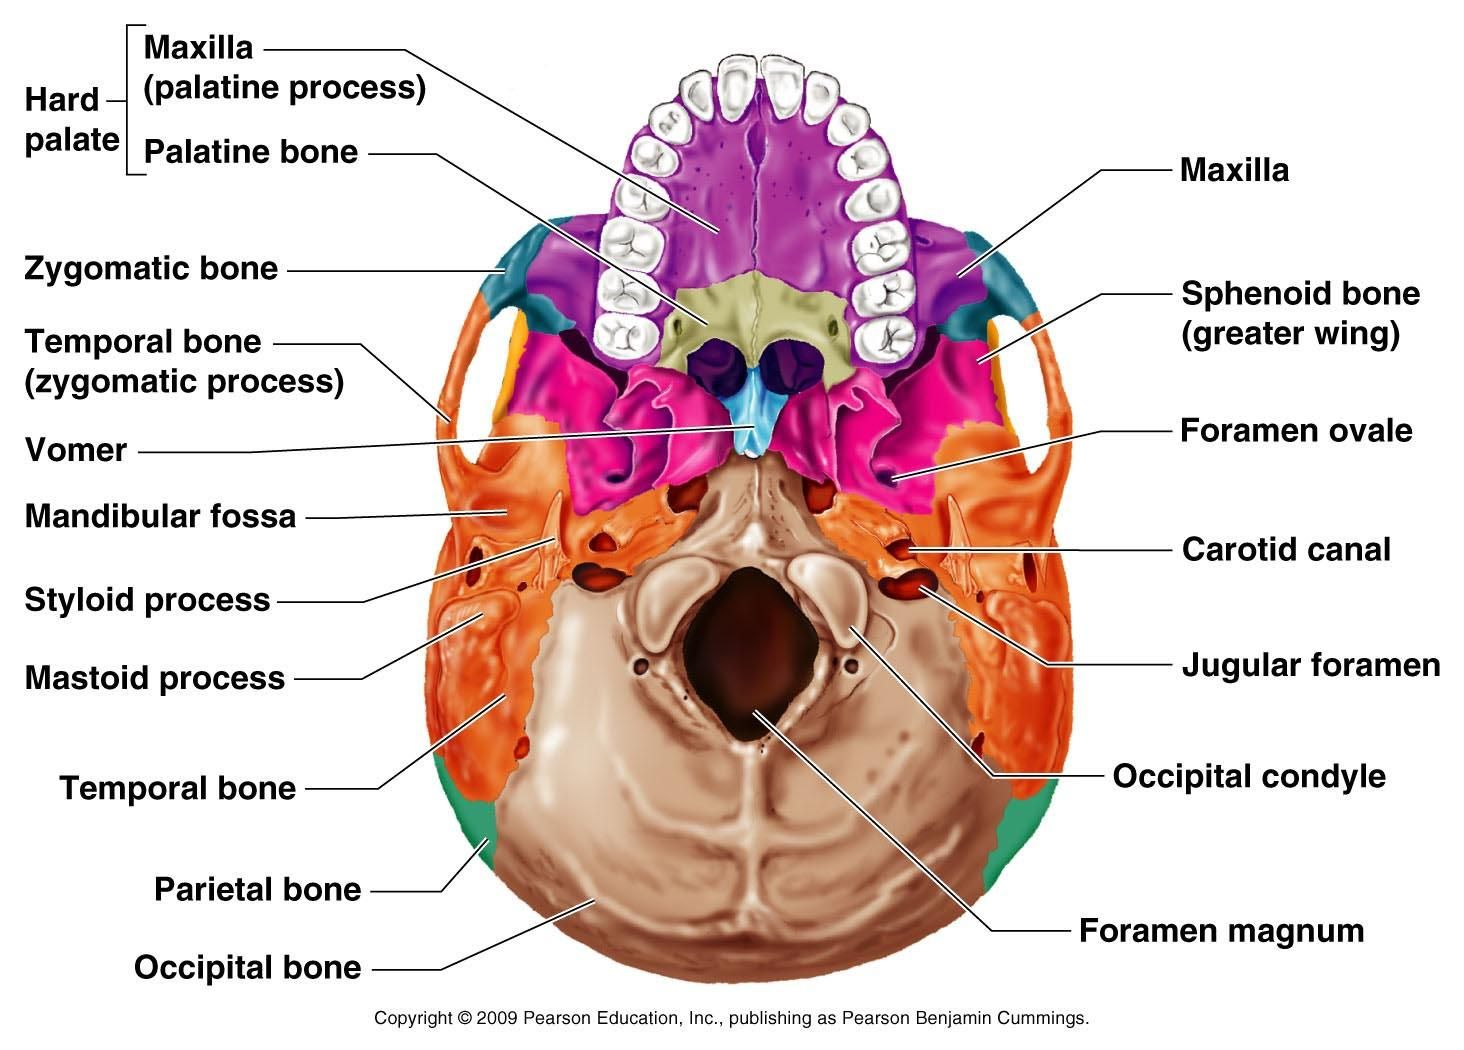 Human Anatomy Pearson Blank Skull Bones Of Hard Palate Google Search Med Sci Terms For Skull Anatomy Anatomy Bones Dental Anatomy